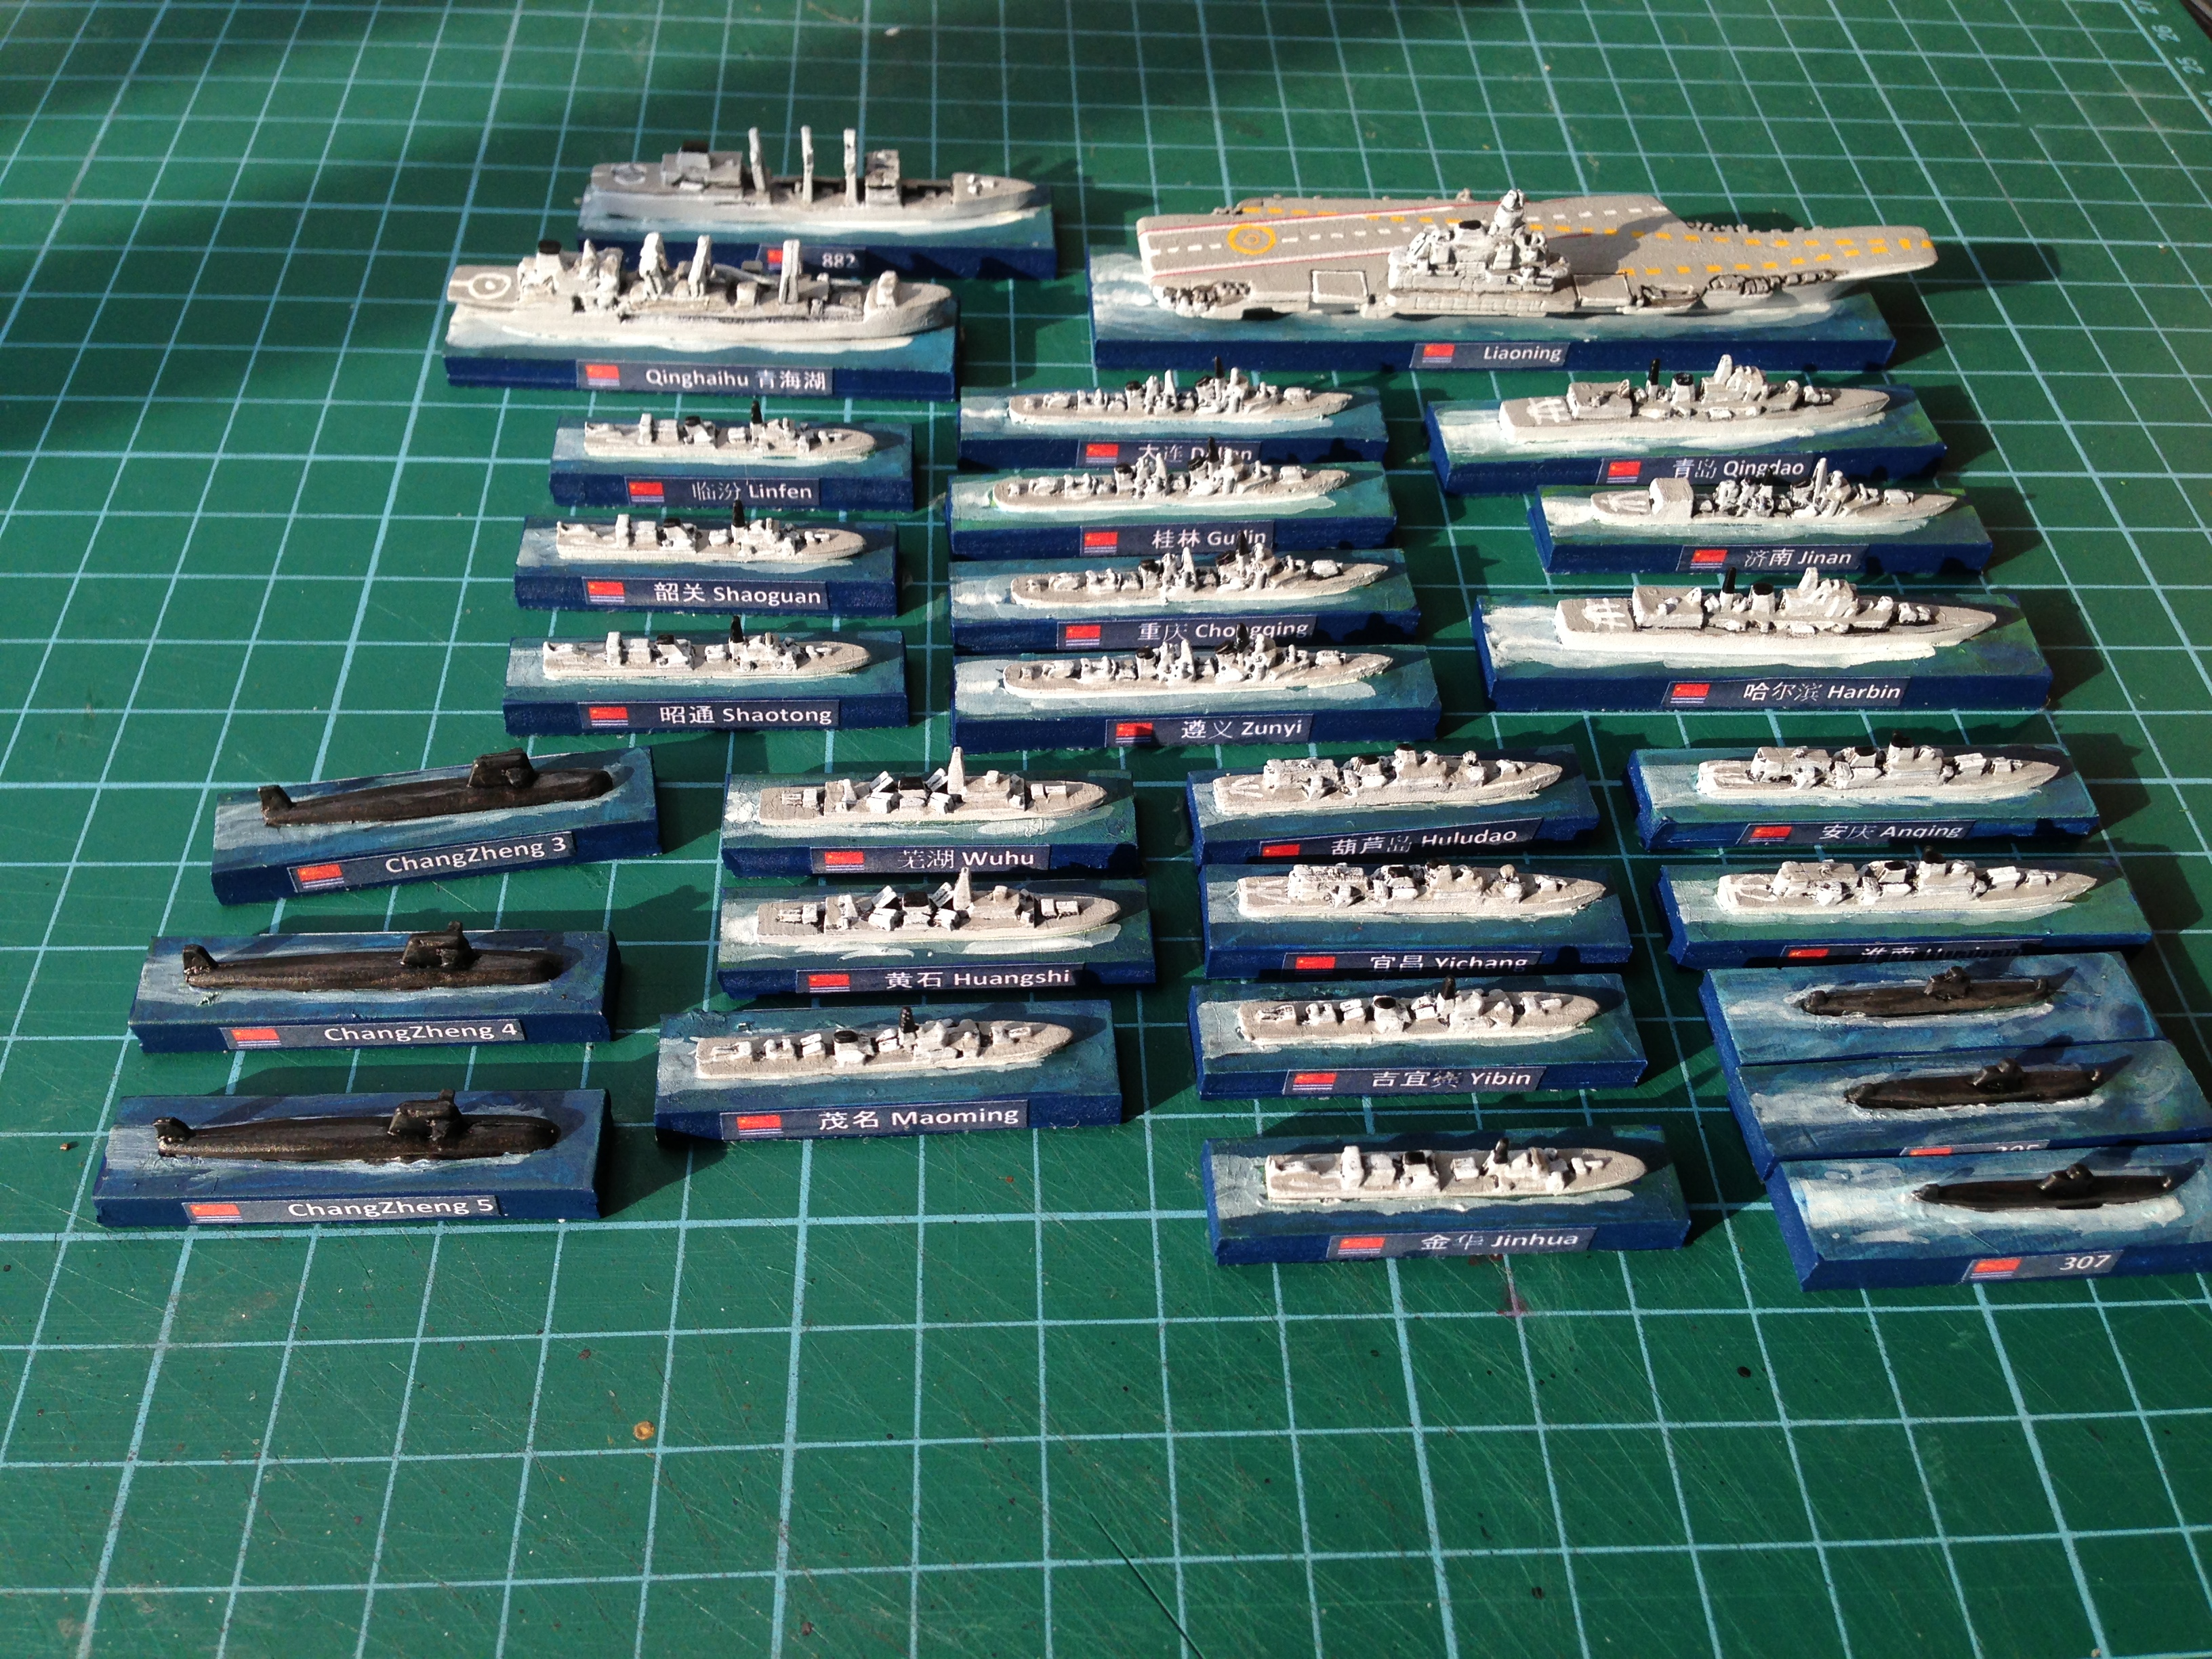 The PLAN fleet complete